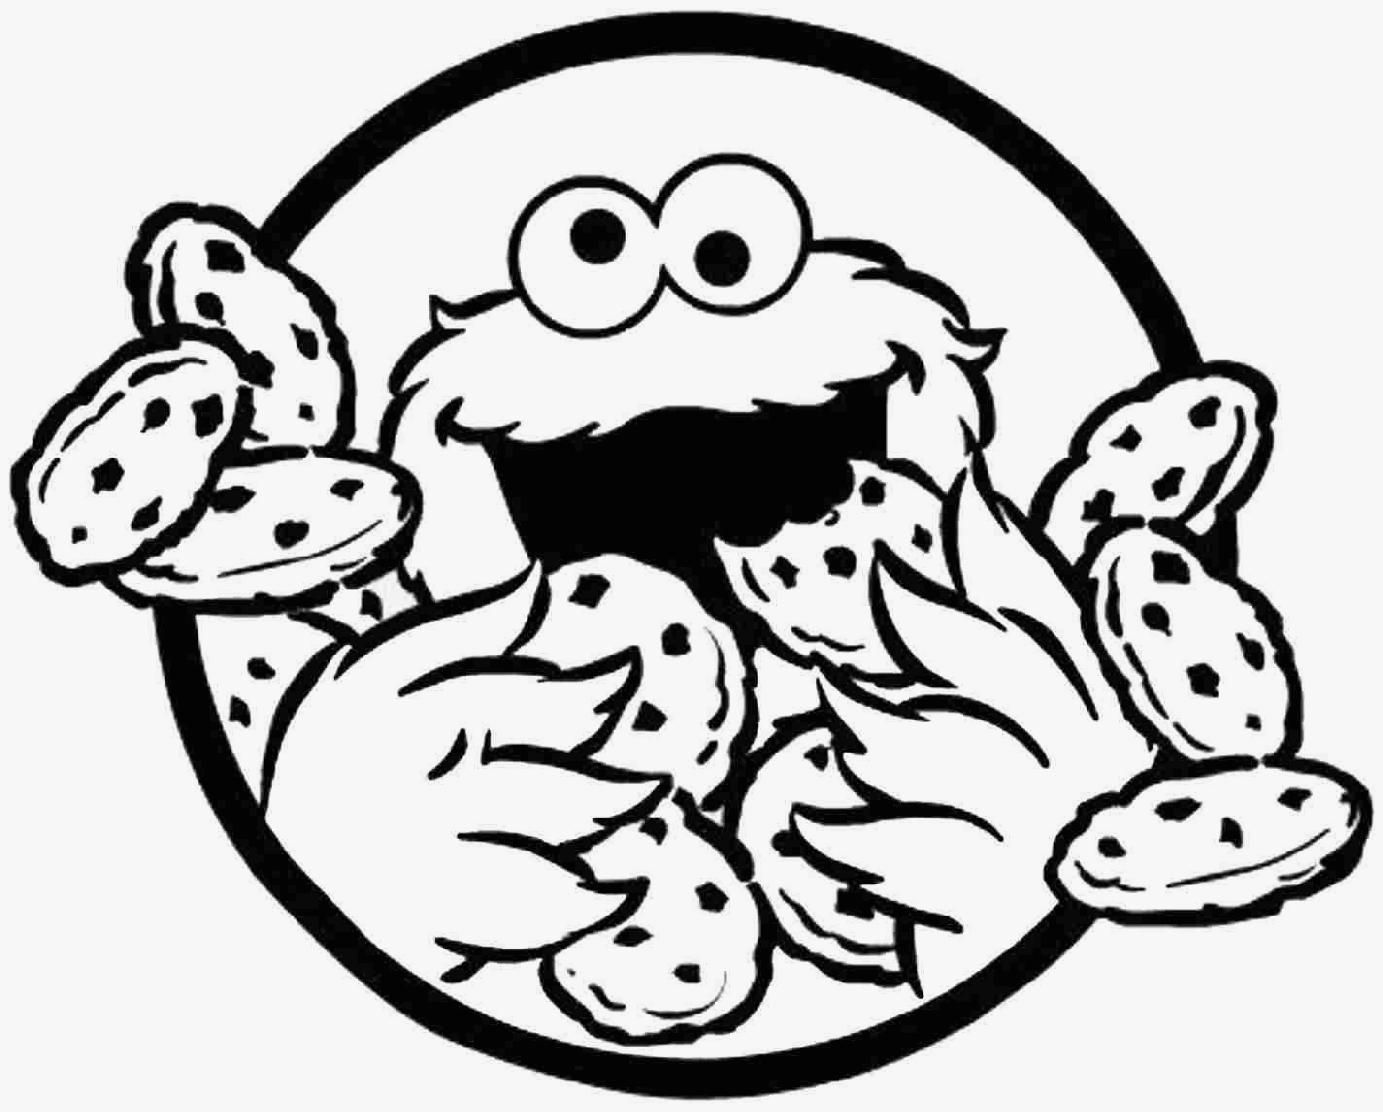 Se self control coloring pages - Cute Cartoon Monster Coloring Pages Colorine Net 2151